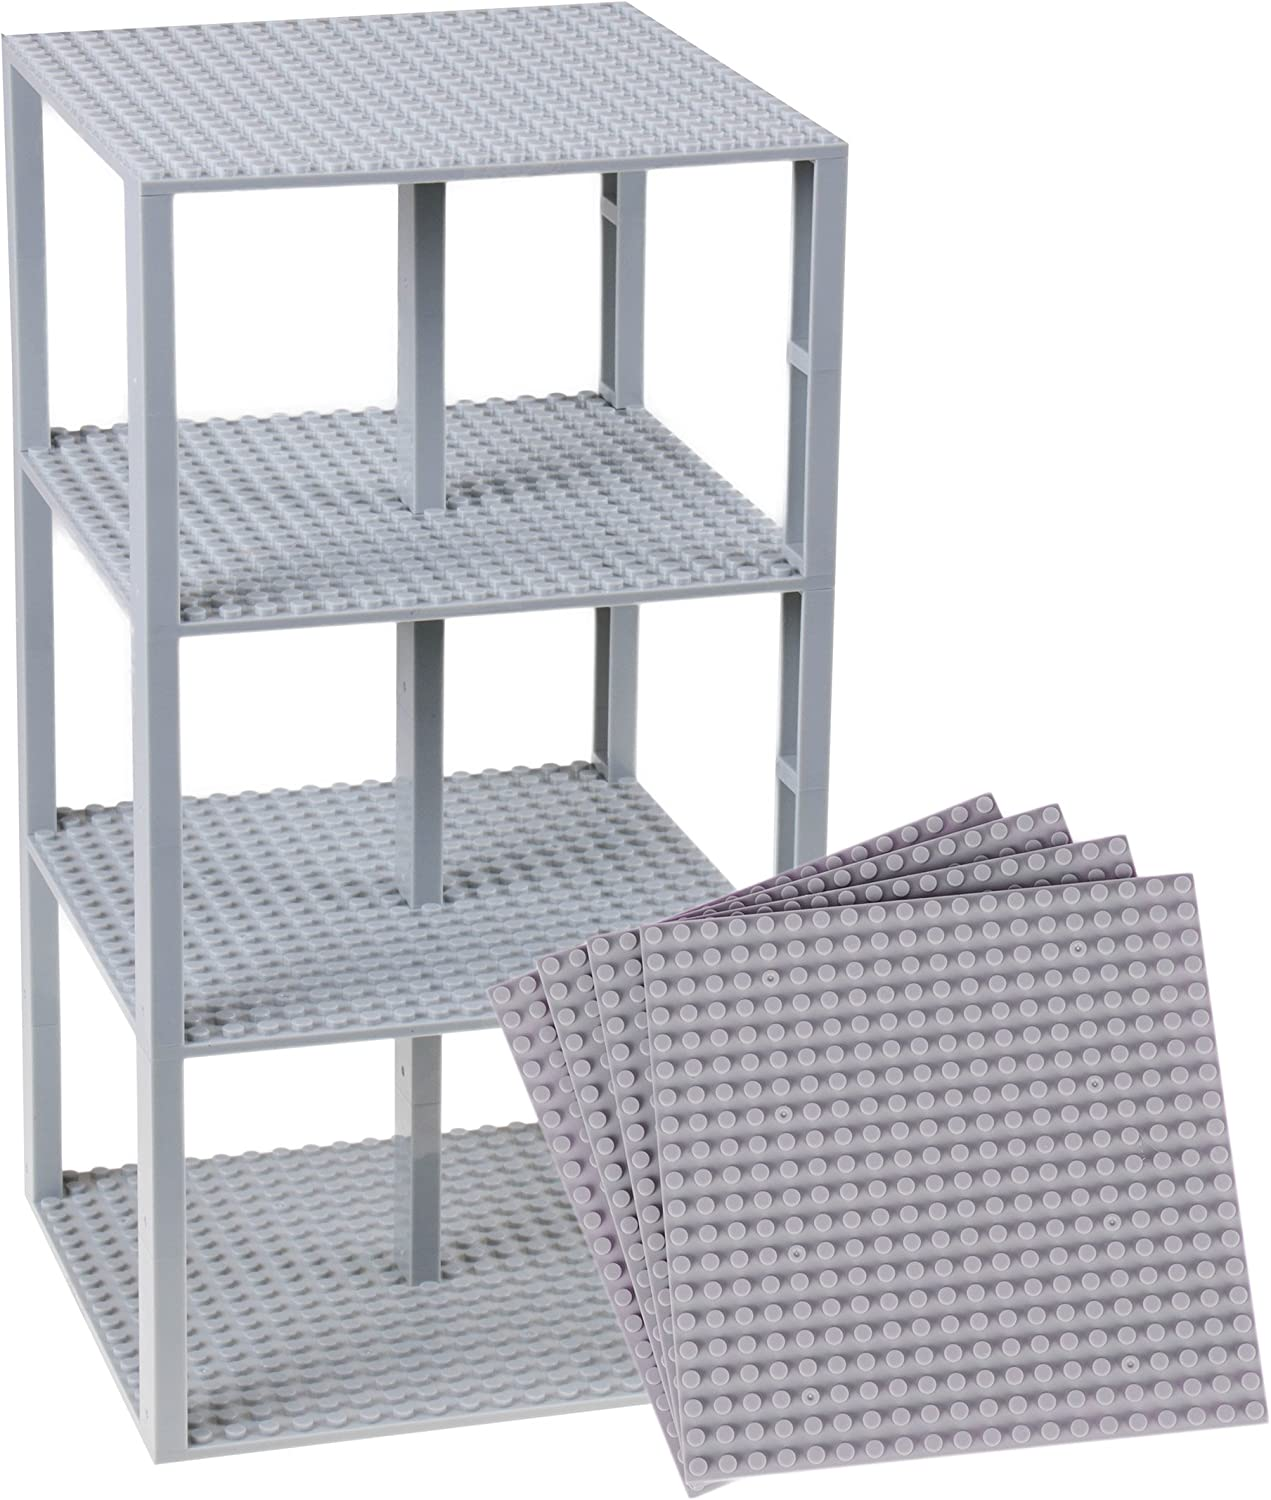 "Premium Light Gray Stackable Base Plates - 4 Pack 6"" x 6"" Baseplate Bundle with 30 Light Gray New and Improved 2 X 2 Stackers - Compatible with All Major Brands - Tower Construction"